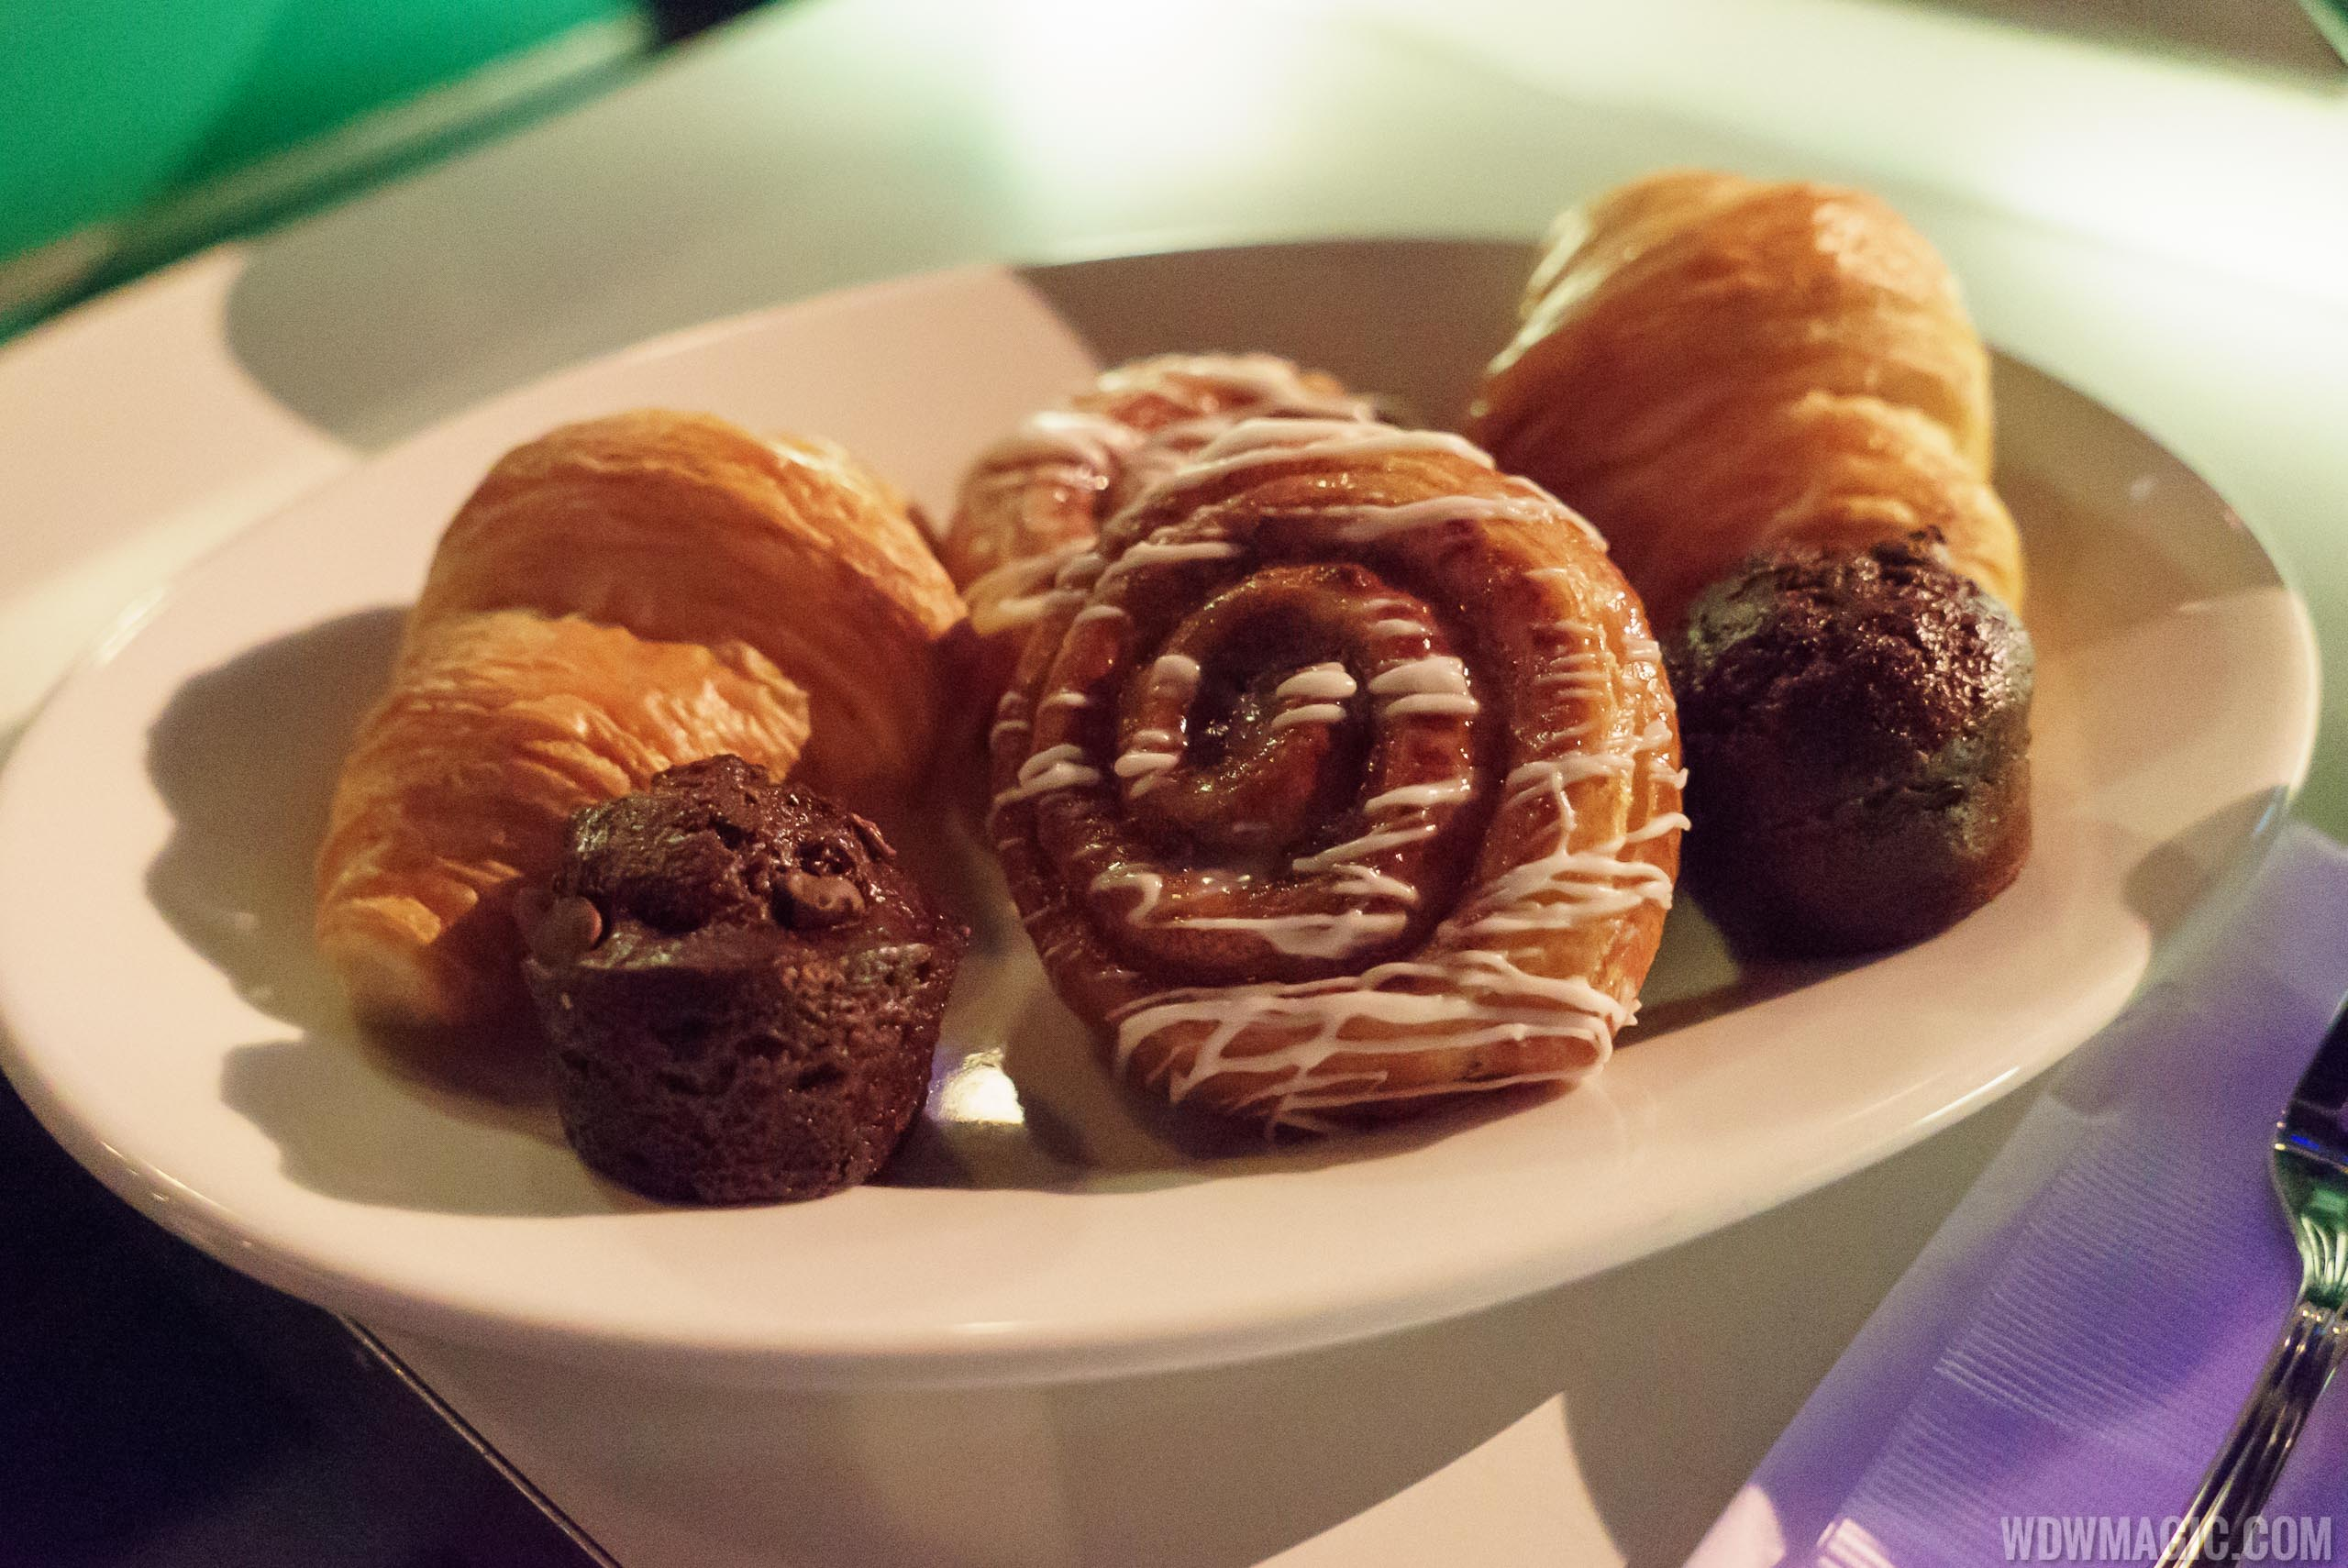 Sci-Fi Dine-In breakfast - Pastry basket with Croissant, Double Chocolate Muffin, and Orange-glazed Cinnamon Bun